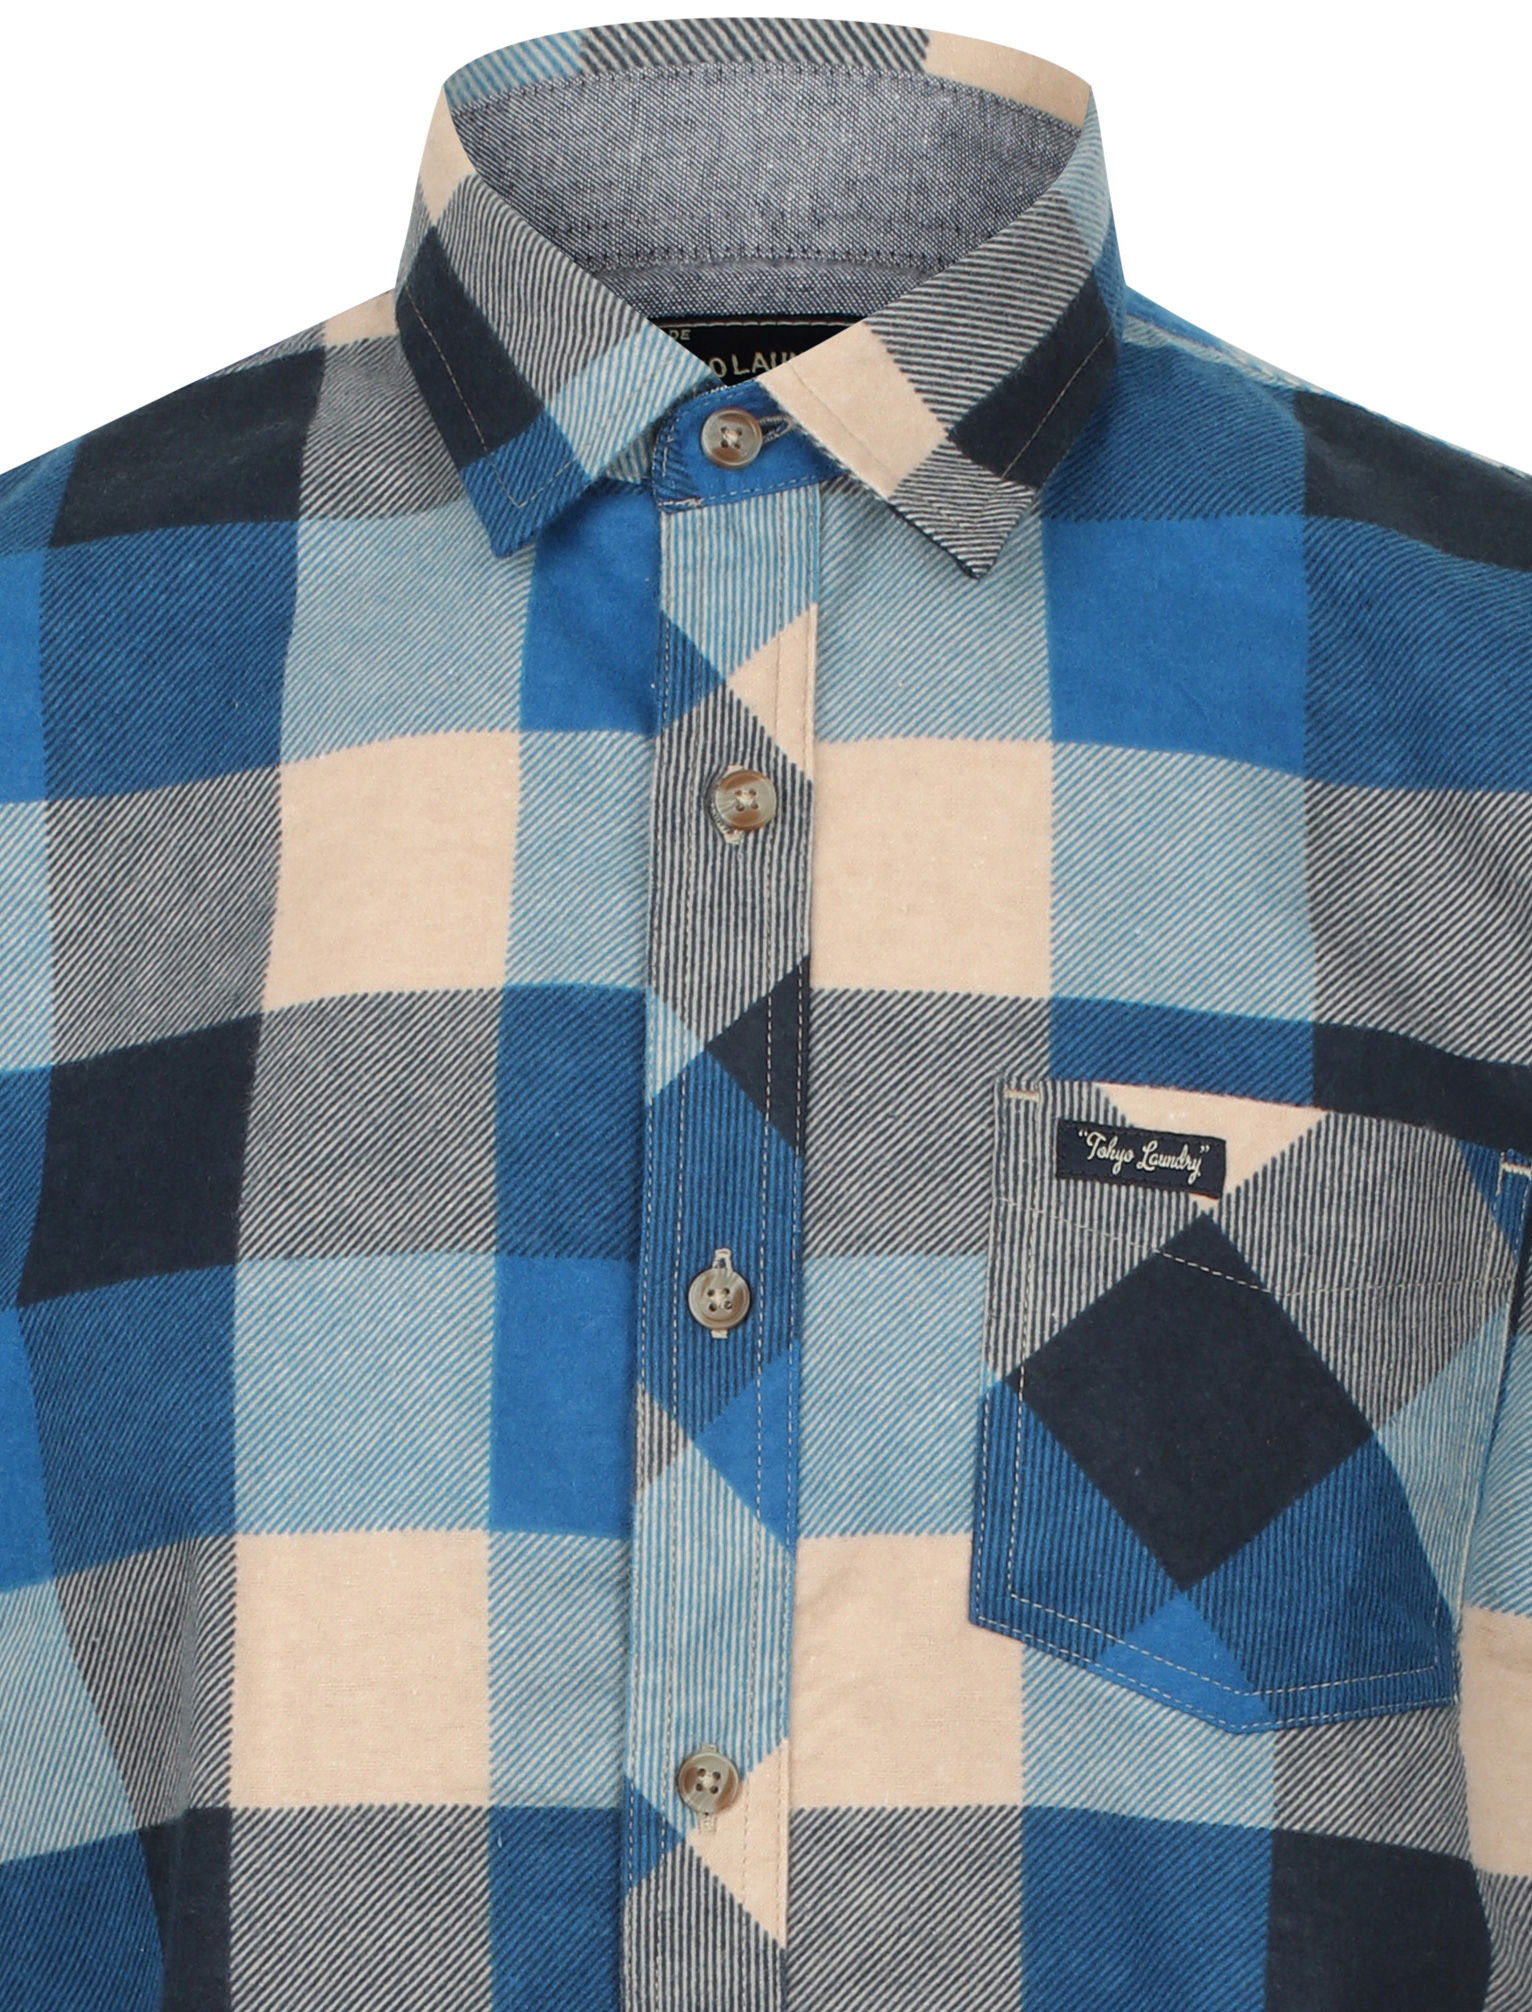 New-Mens-Tokyo-Laundry-Cotton-Long-Sleeve-Checked-Flannel-Shirt-Size-S-XL thumbnail 44